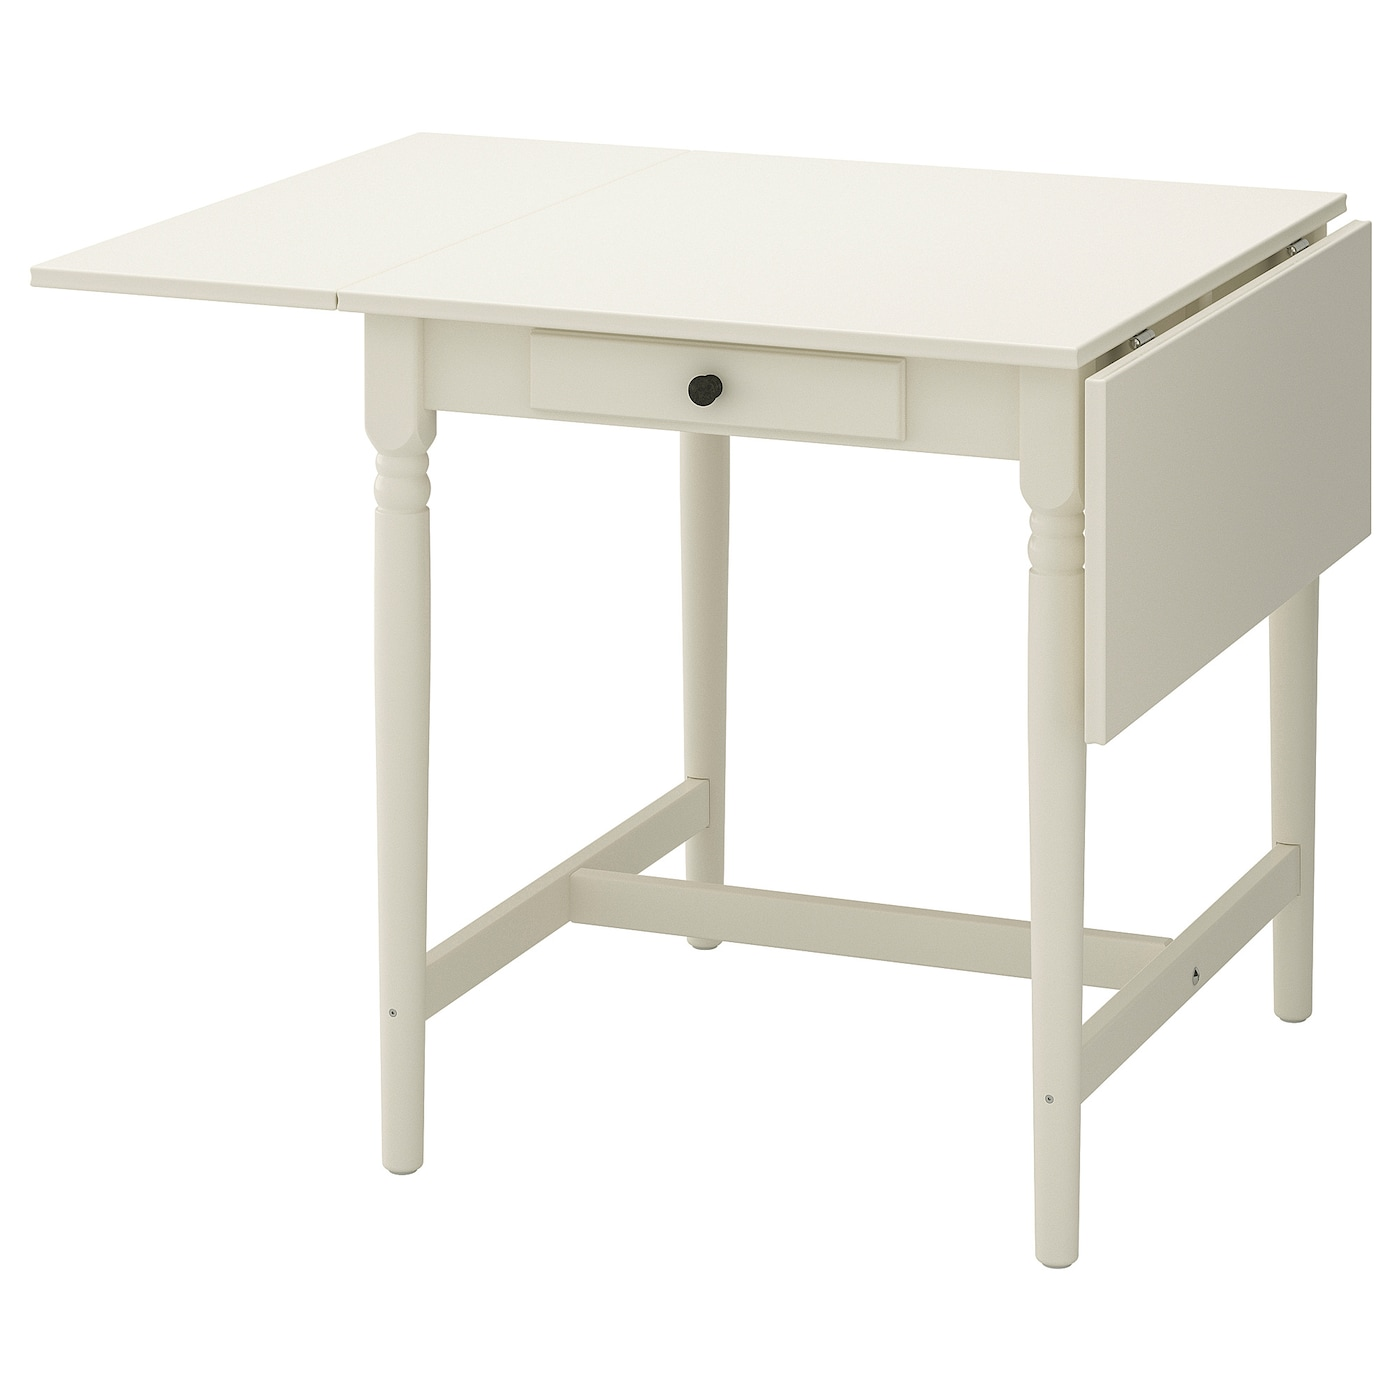 Cozy Living Room Paint Colors, Ingatorp White Drop Leaf Table Ikea